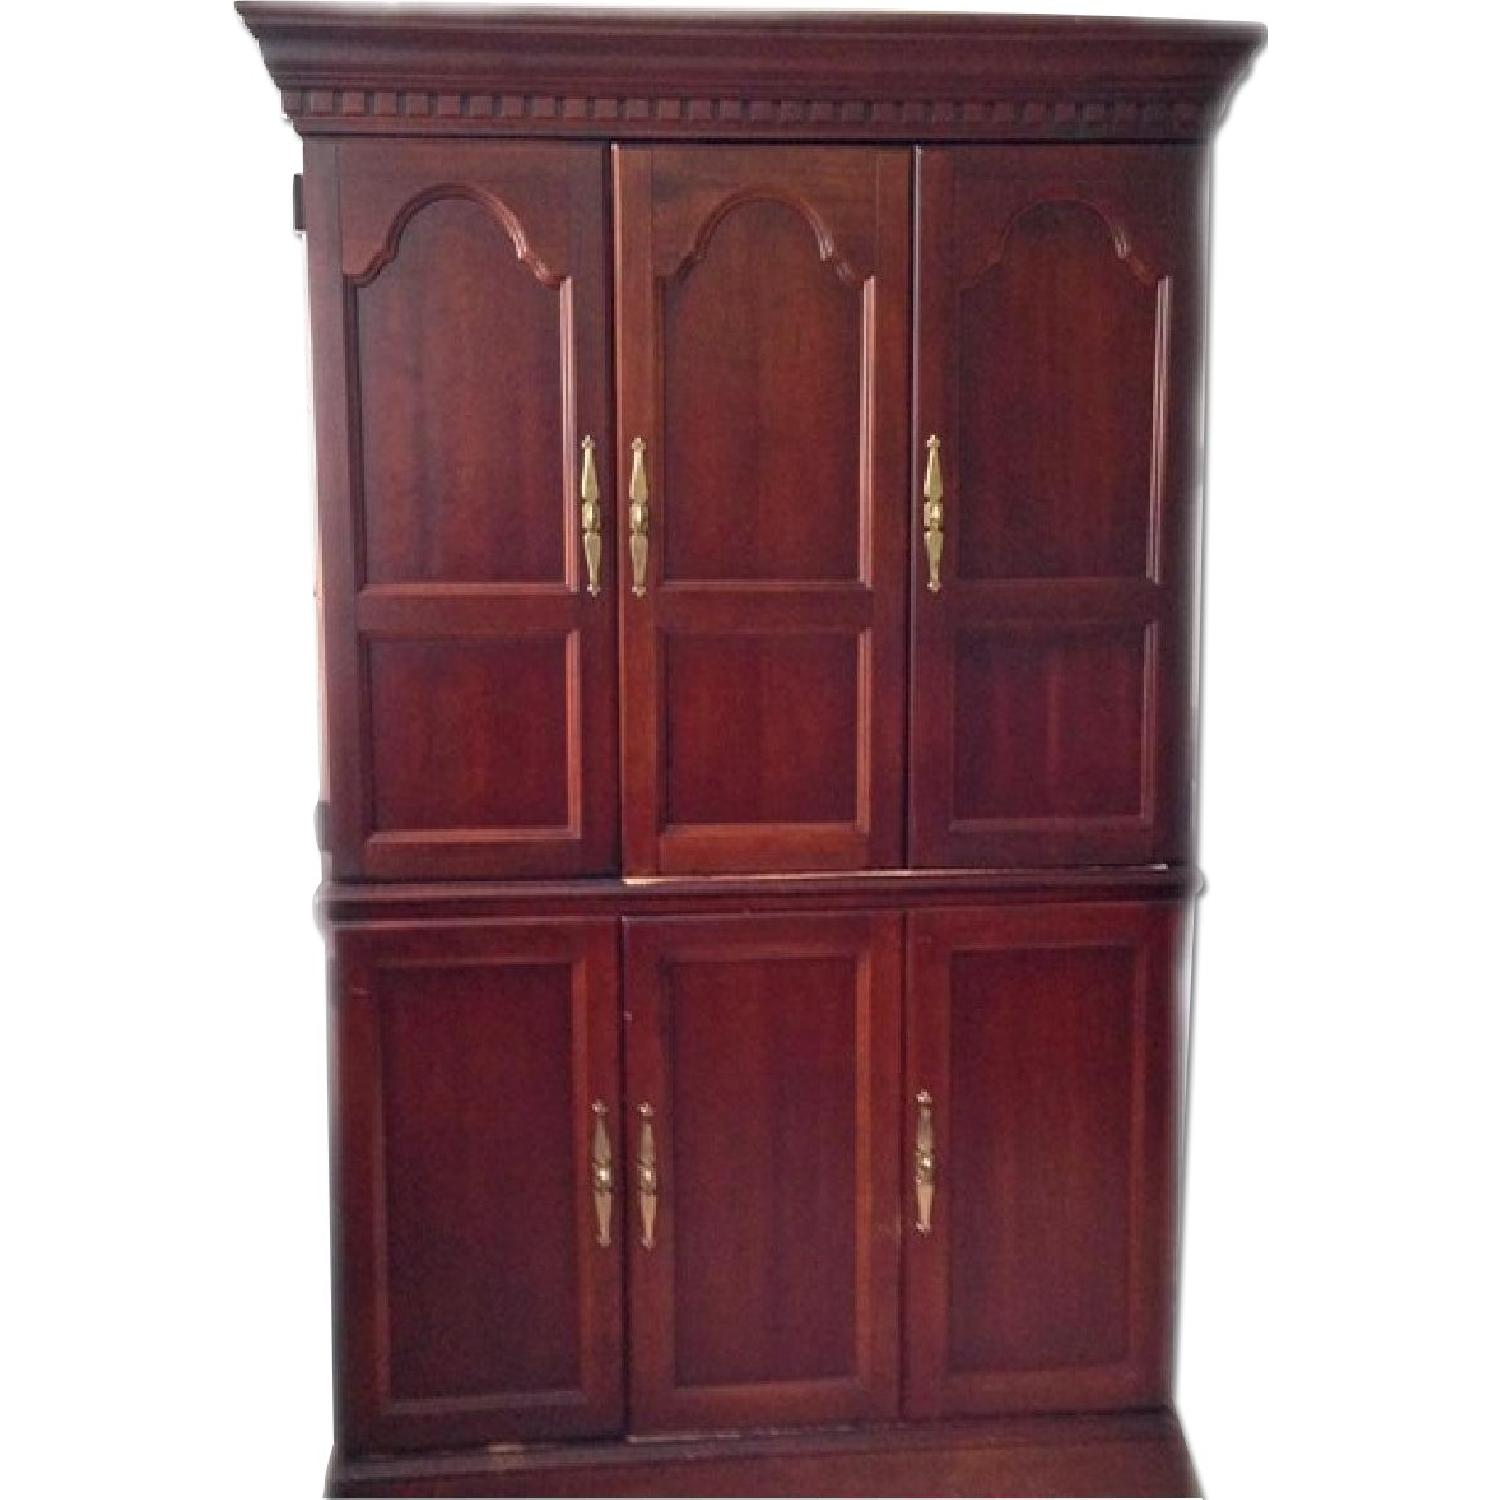 Used media storage for sale in nyc aptdeco for Armoire new york city